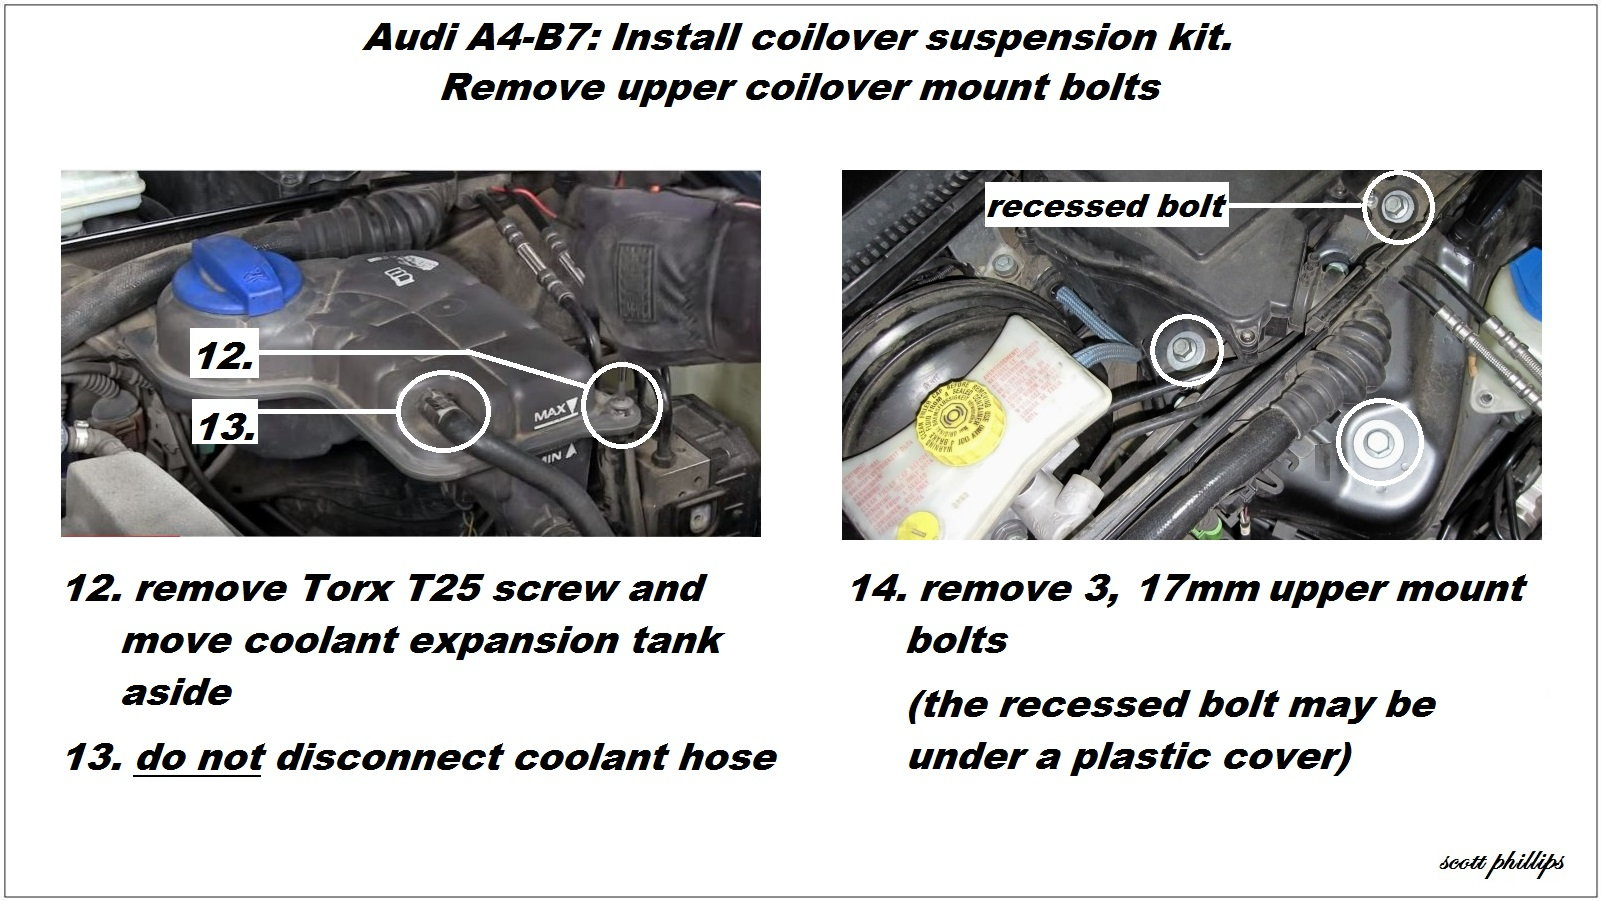 Audi A4 B7 Shock Reviews and How to Install Shock Absorber | Audiworld